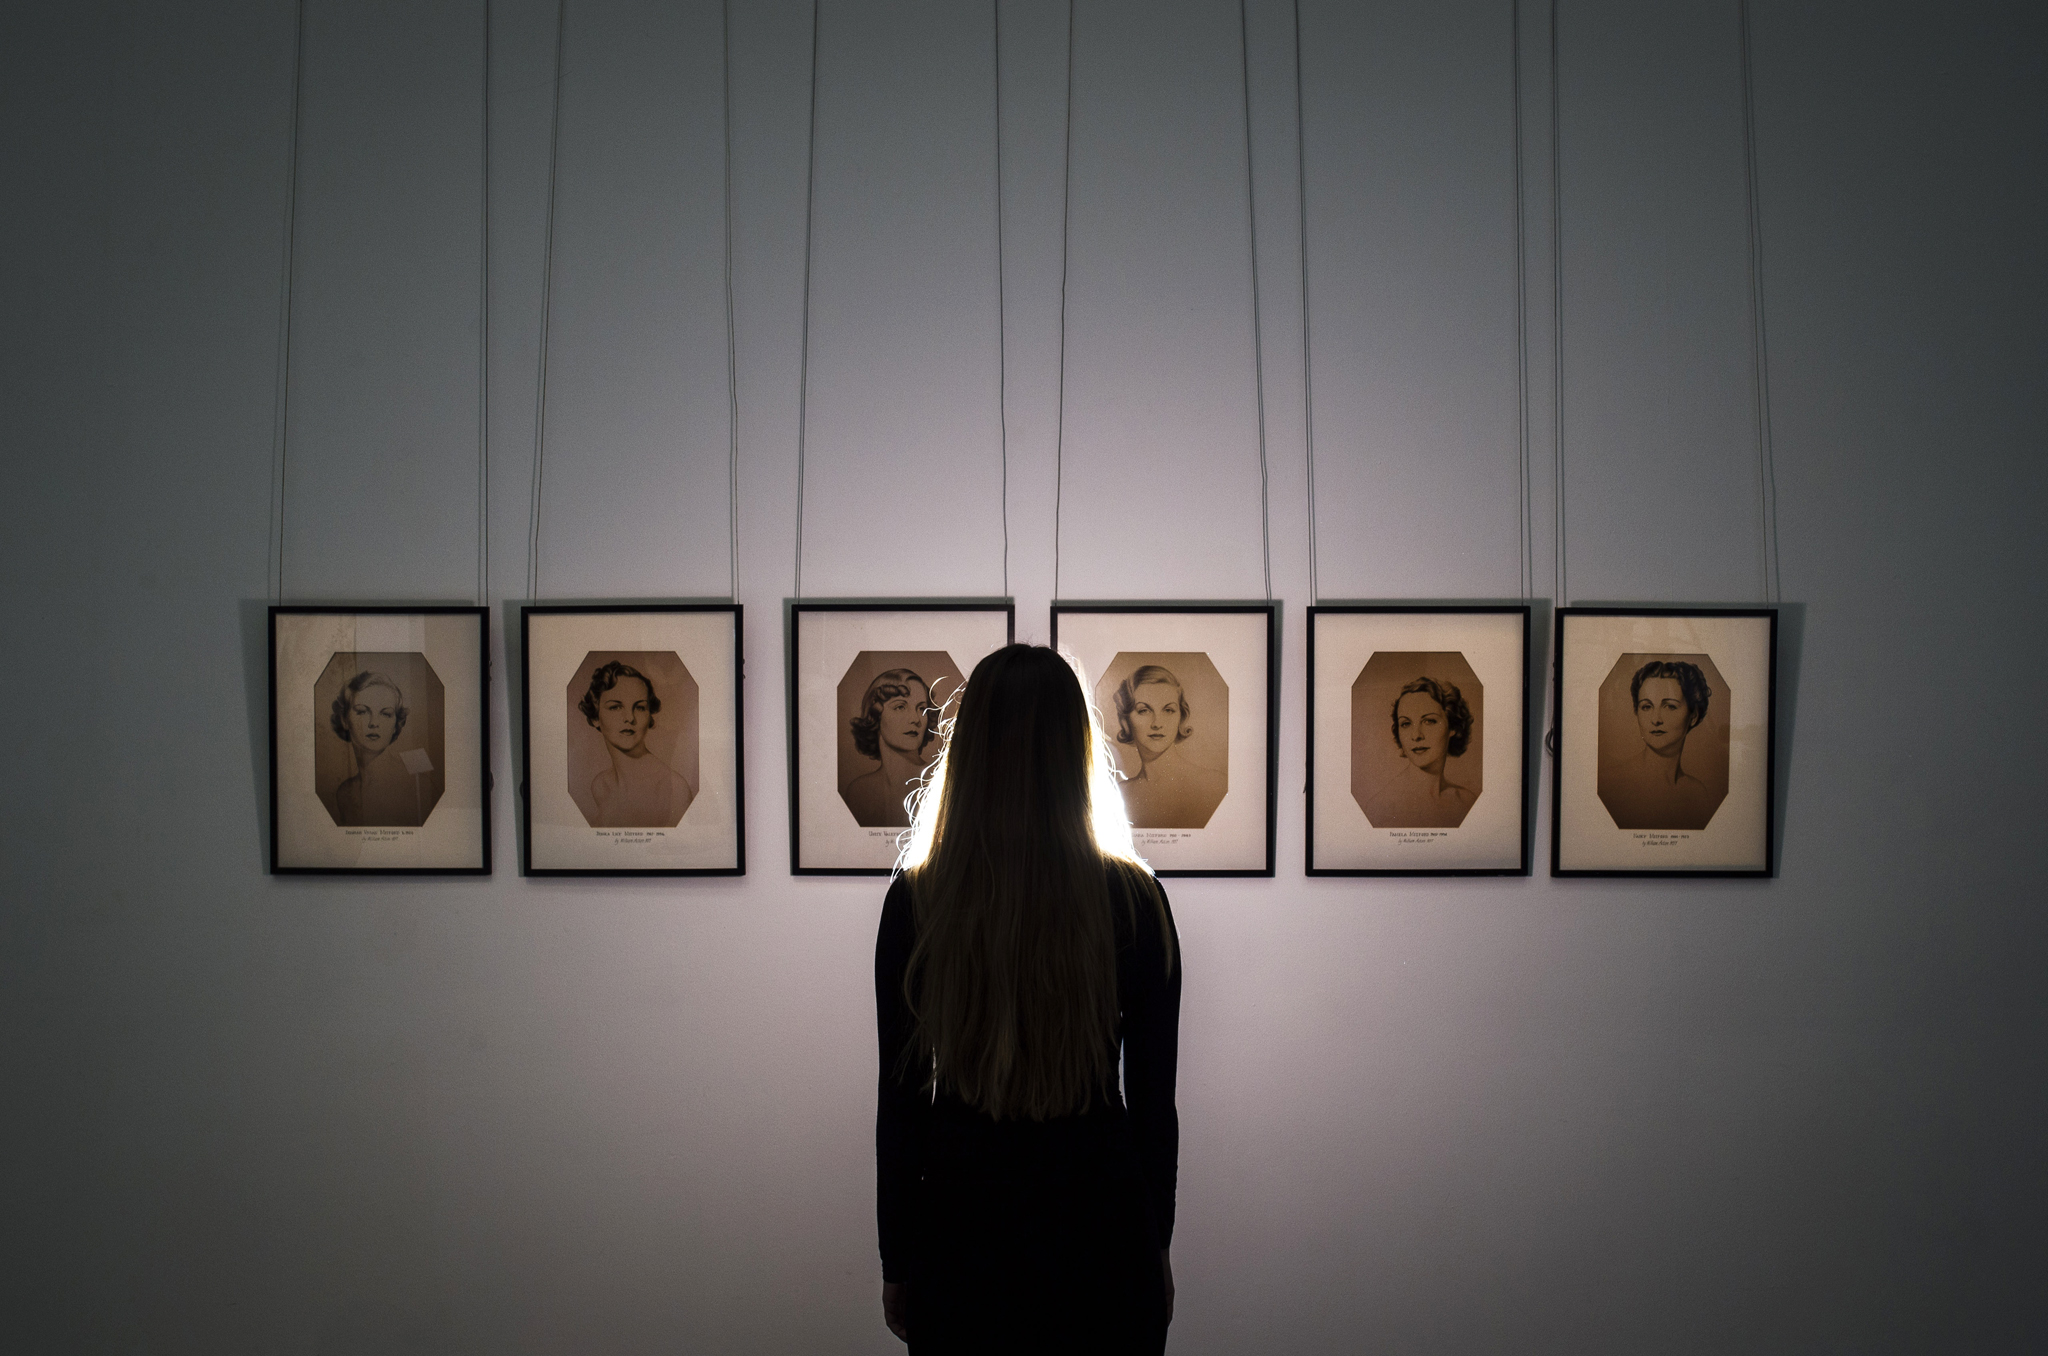 A Sotheby's employee stands infront of a series of portraits of the Mitford Sisters during the pre-auction preview of the personal collection of Deborah Cavendish, Duchess of Devonshire at Sotheby's